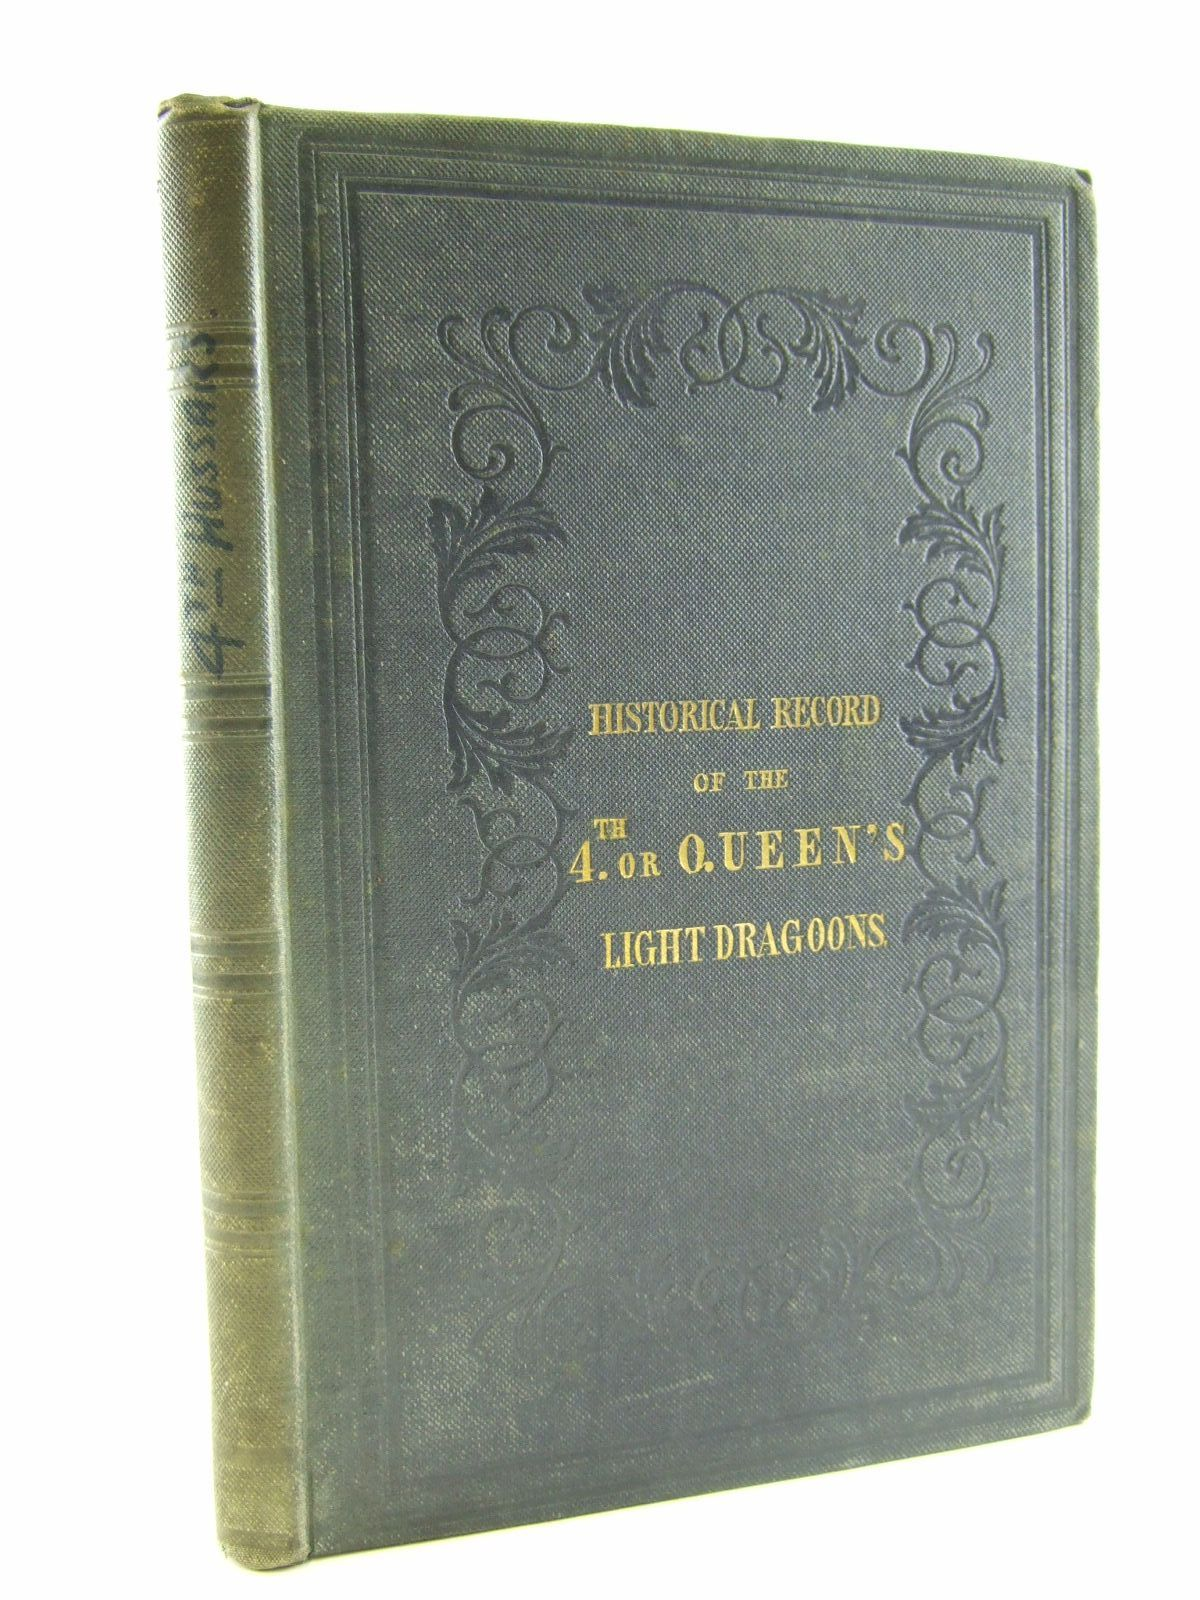 Photo of HISTORICAL RECORD OF THE FOURTH OR THE QUEEN'S OWN REGIMENT OF LIGHT DRAGOONS written by Cannon, Richard published by John W. Parker (STOCK CODE: 1706922)  for sale by Stella & Rose's Books